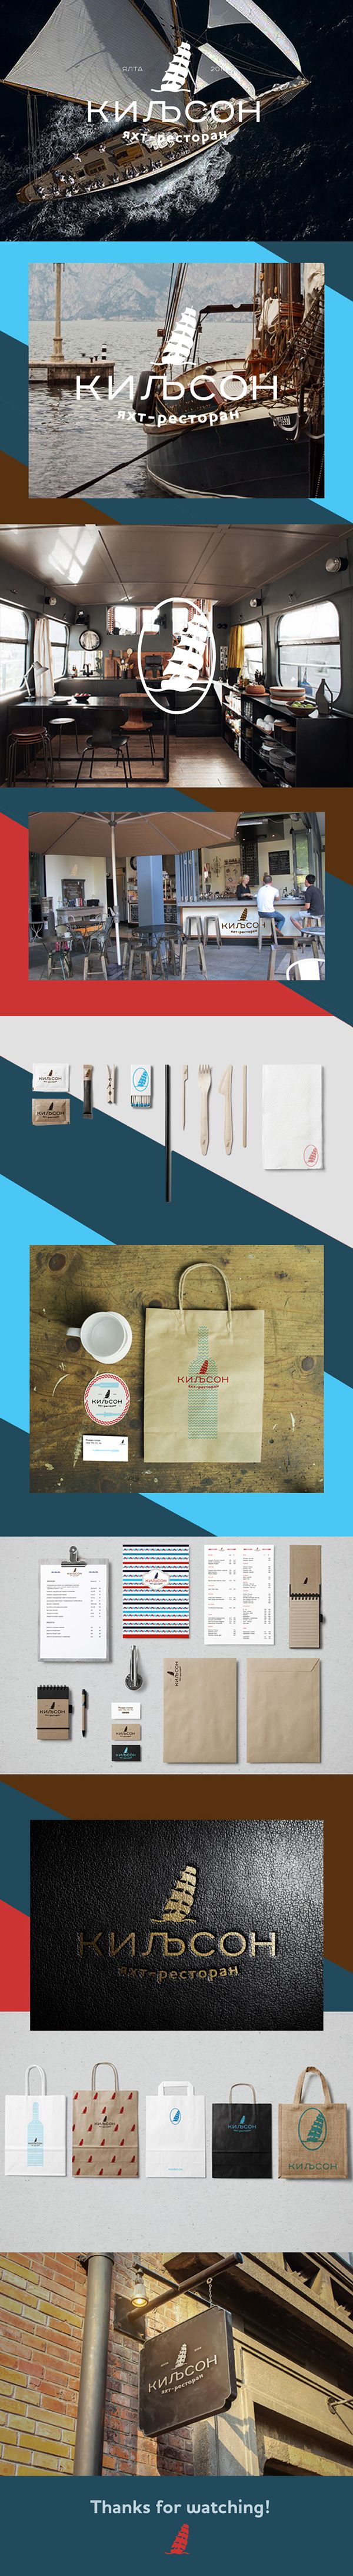 branding for yacht-restaurant Kil`son on Behance